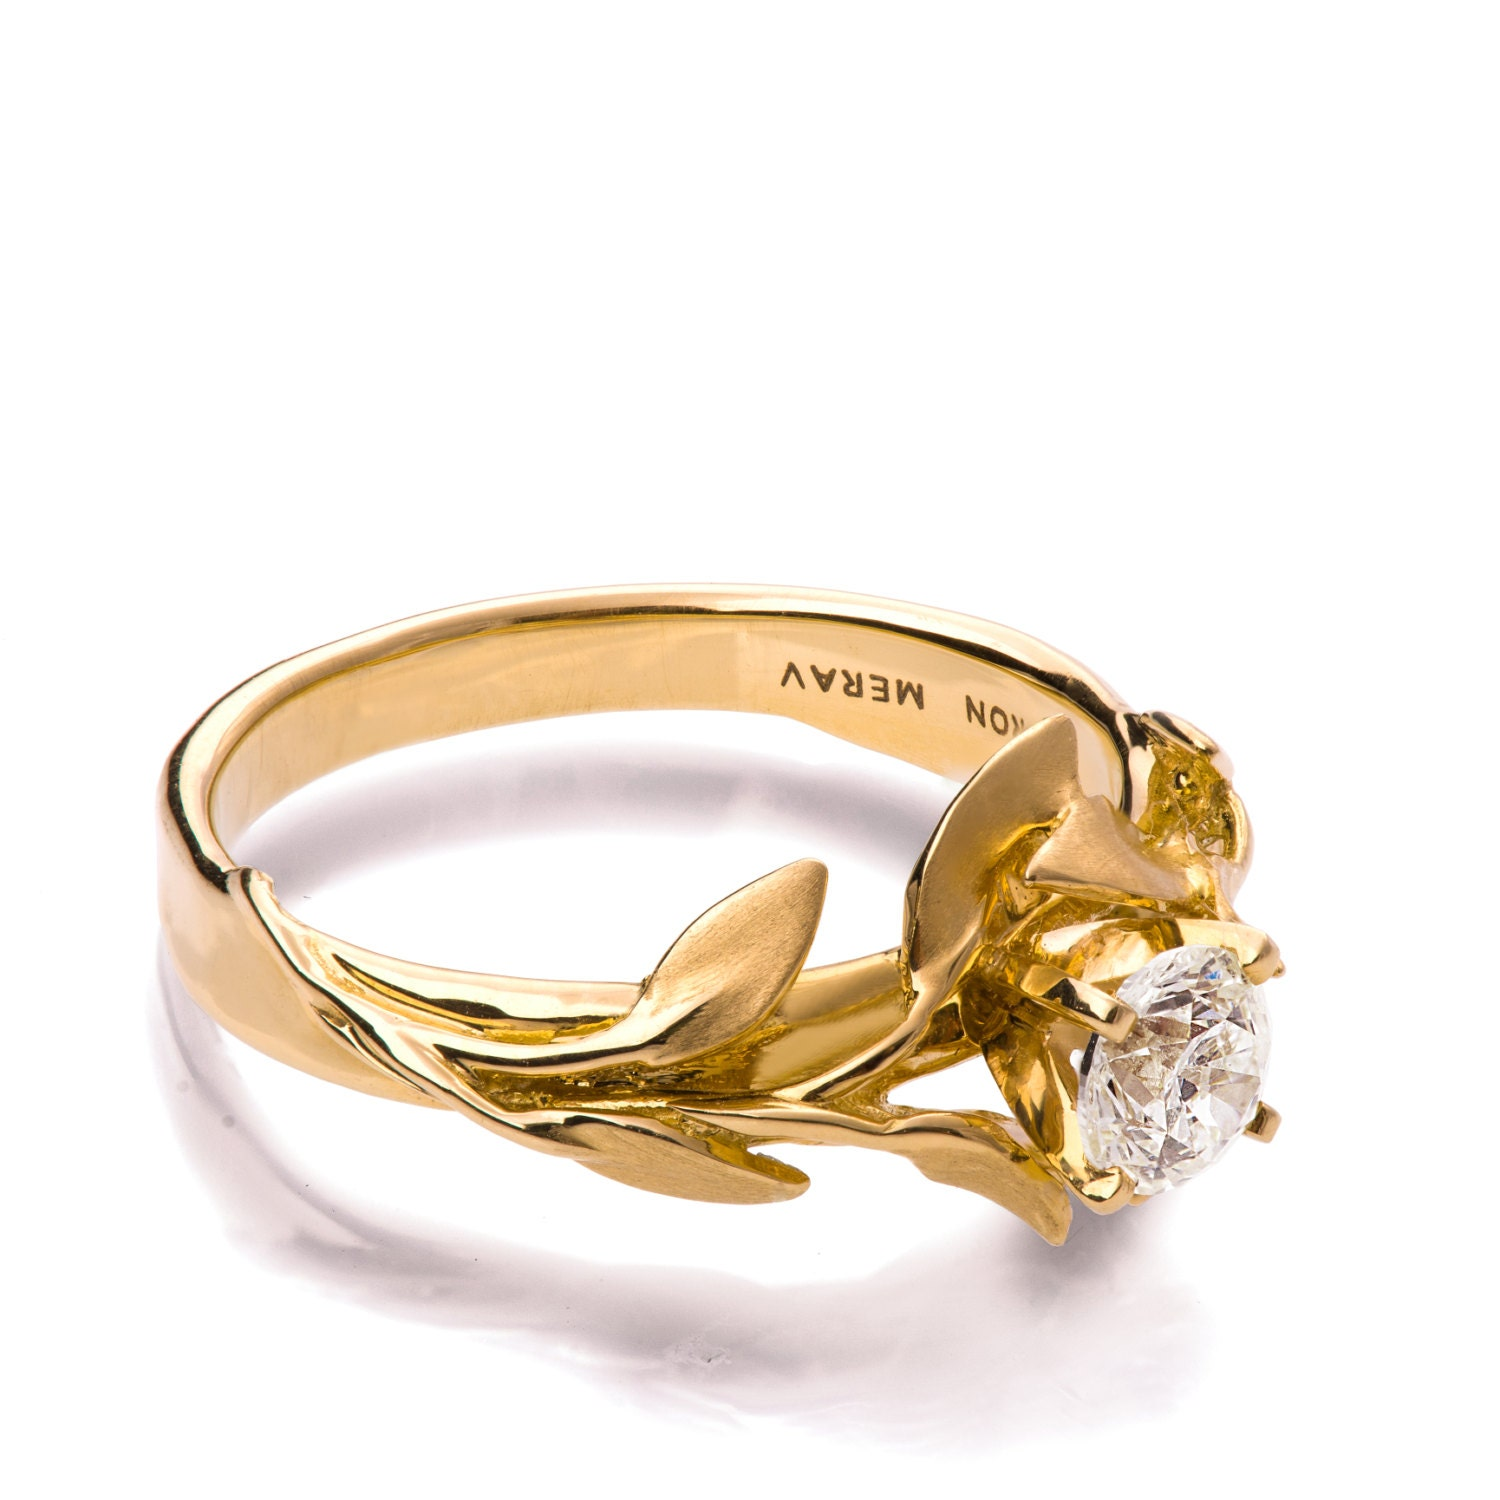 Leaves Engagement Ring No.4 18K Yellow Gold and Diamond